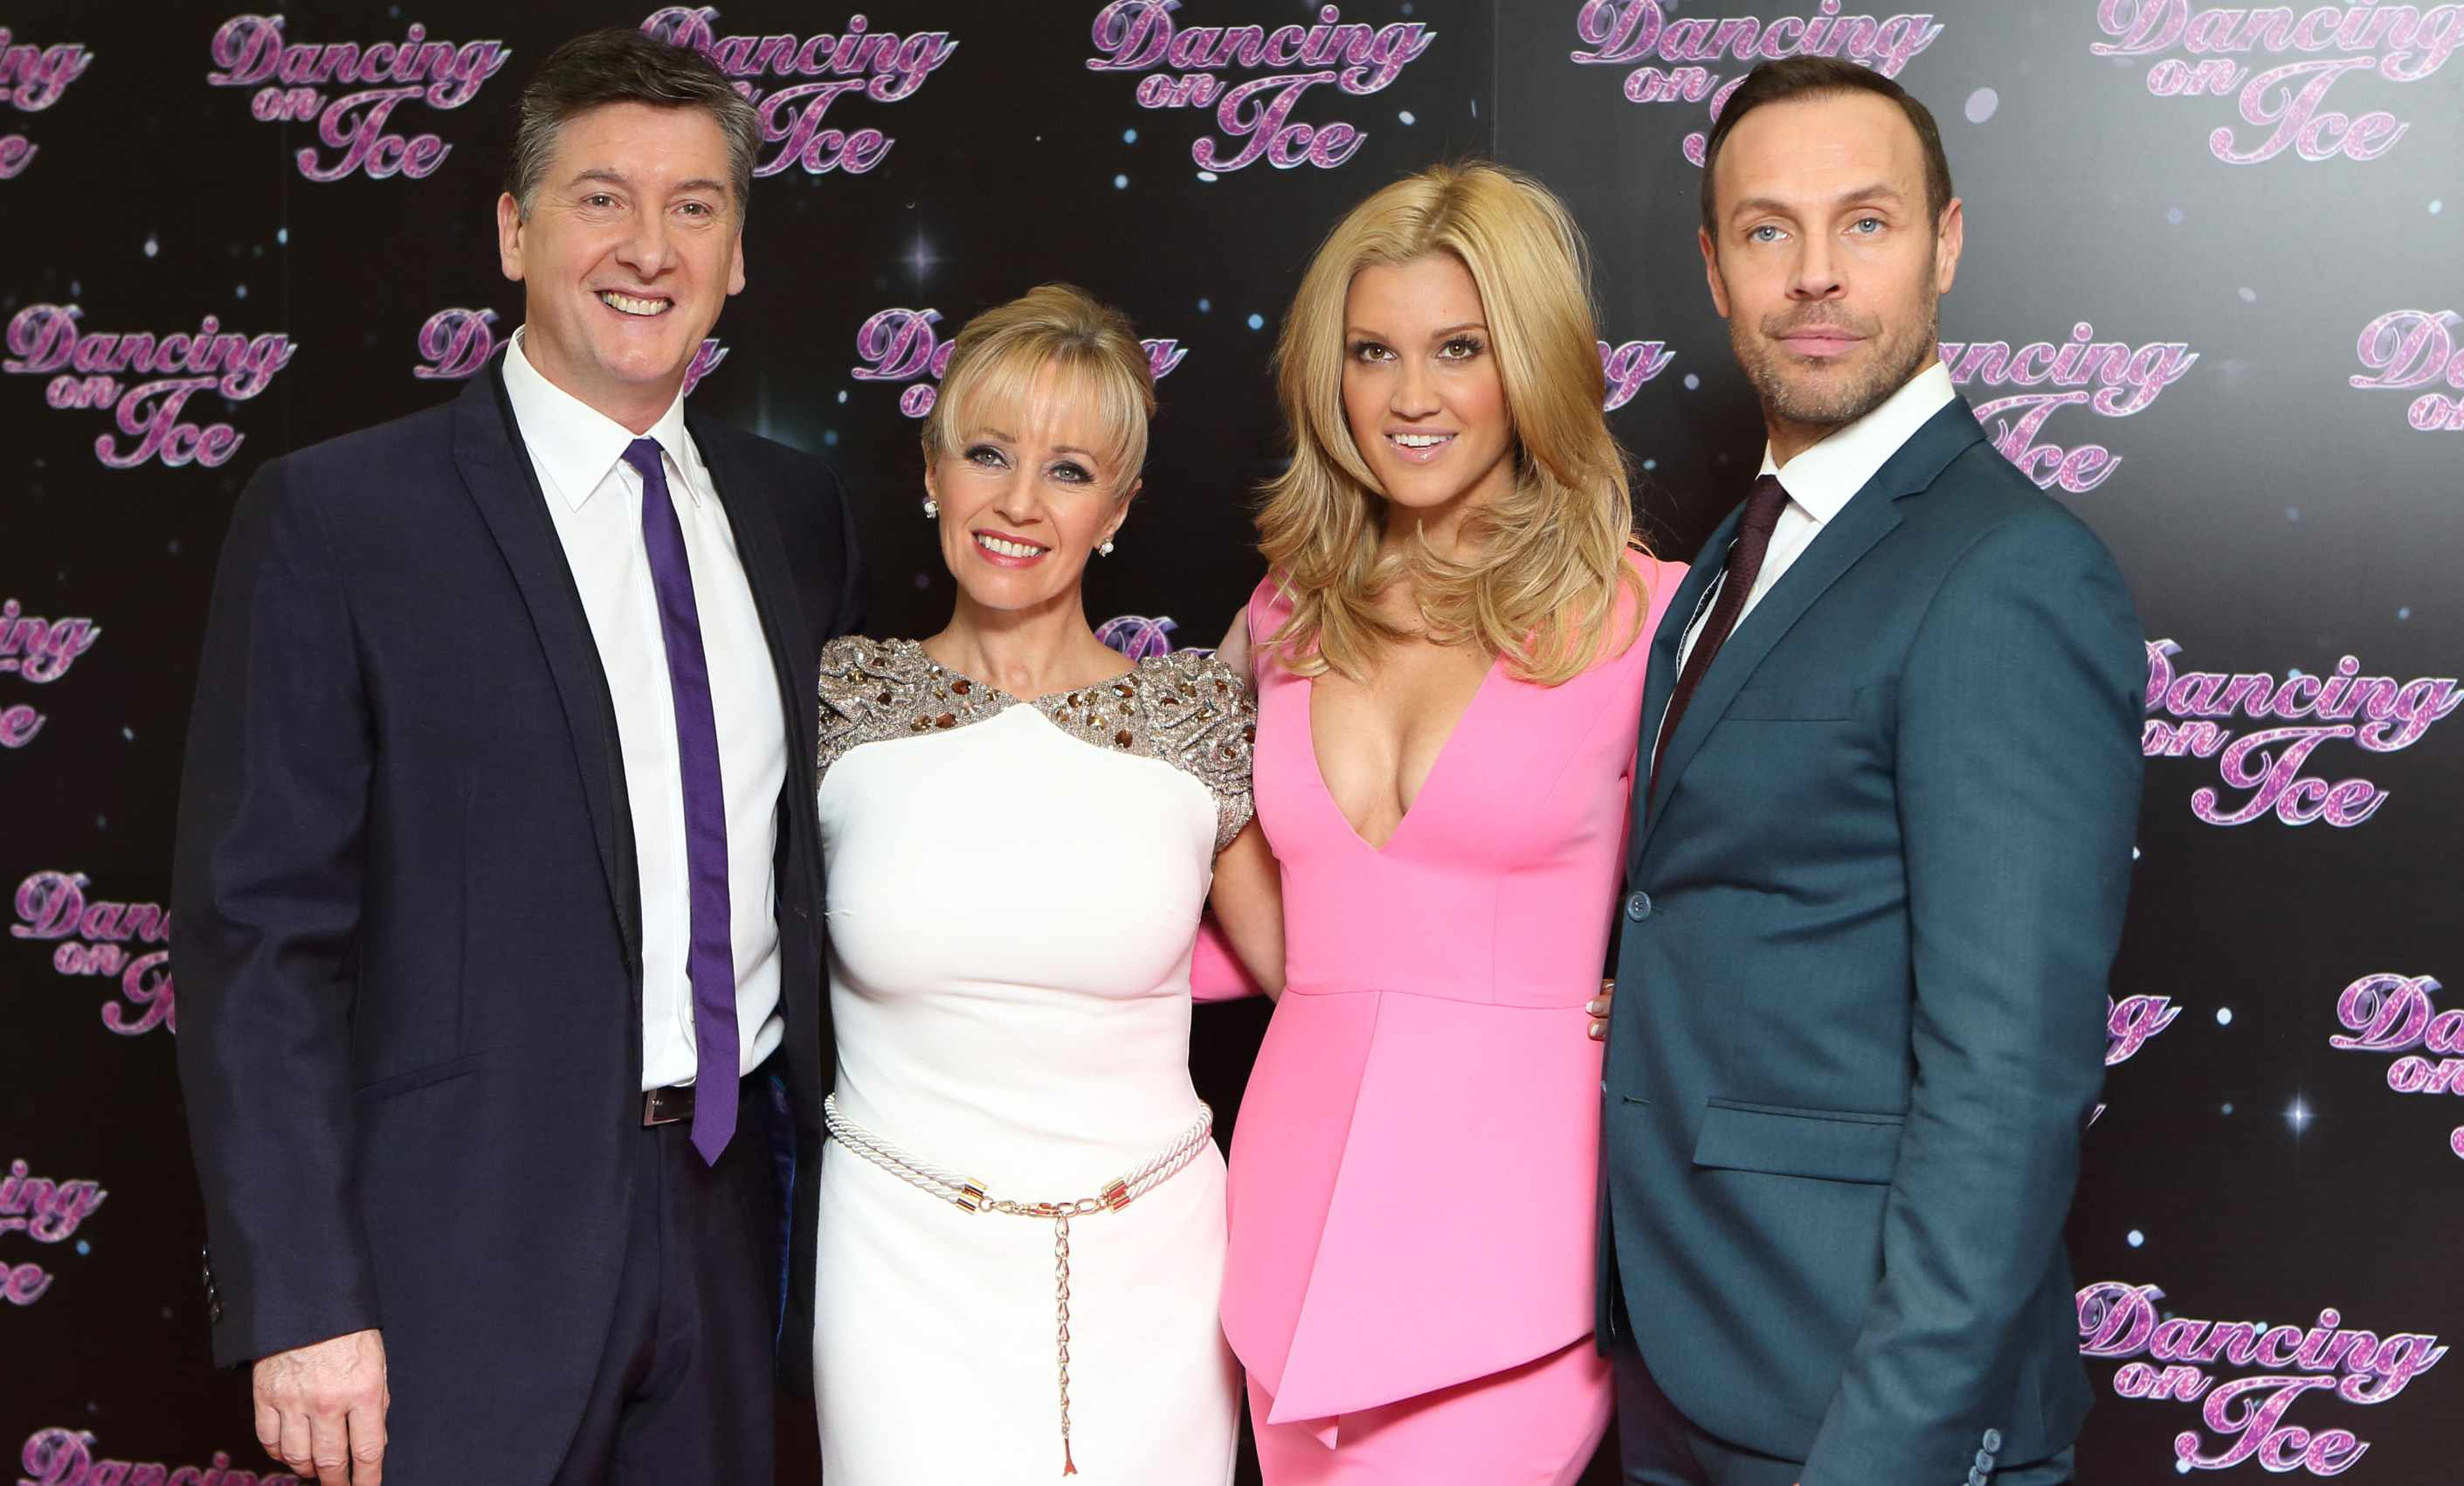 Dancing on Ice judging line-up 2013